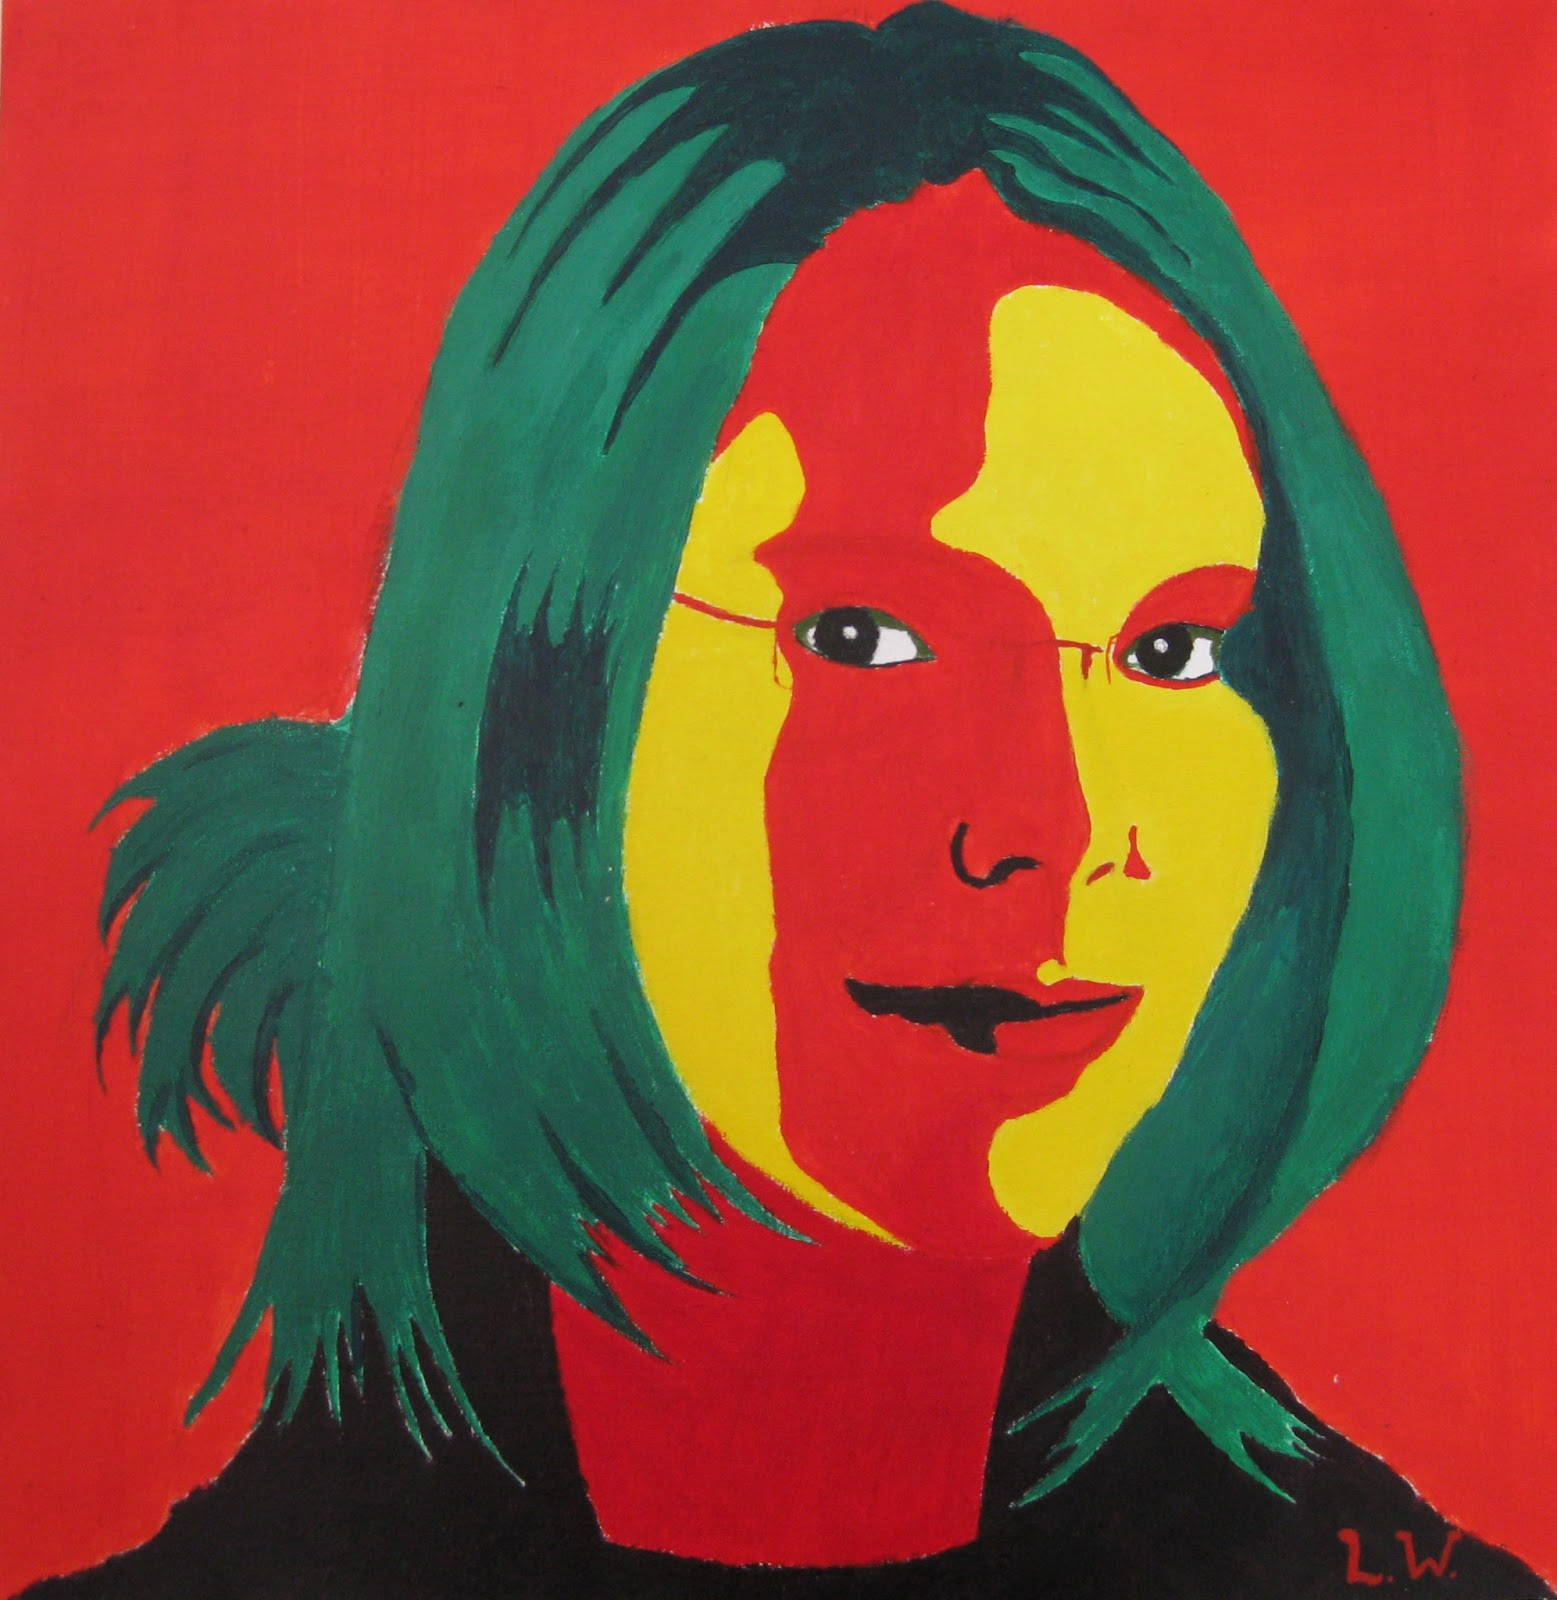 andy warhols impact on art essay Andy warhol essay submitted by belledingdong words: 353 andy warhol had his first one-man show exhibition in 1952 at the hugo gallery in new york in 1956 he had an important group exhibition at the renowned museum of modern art.